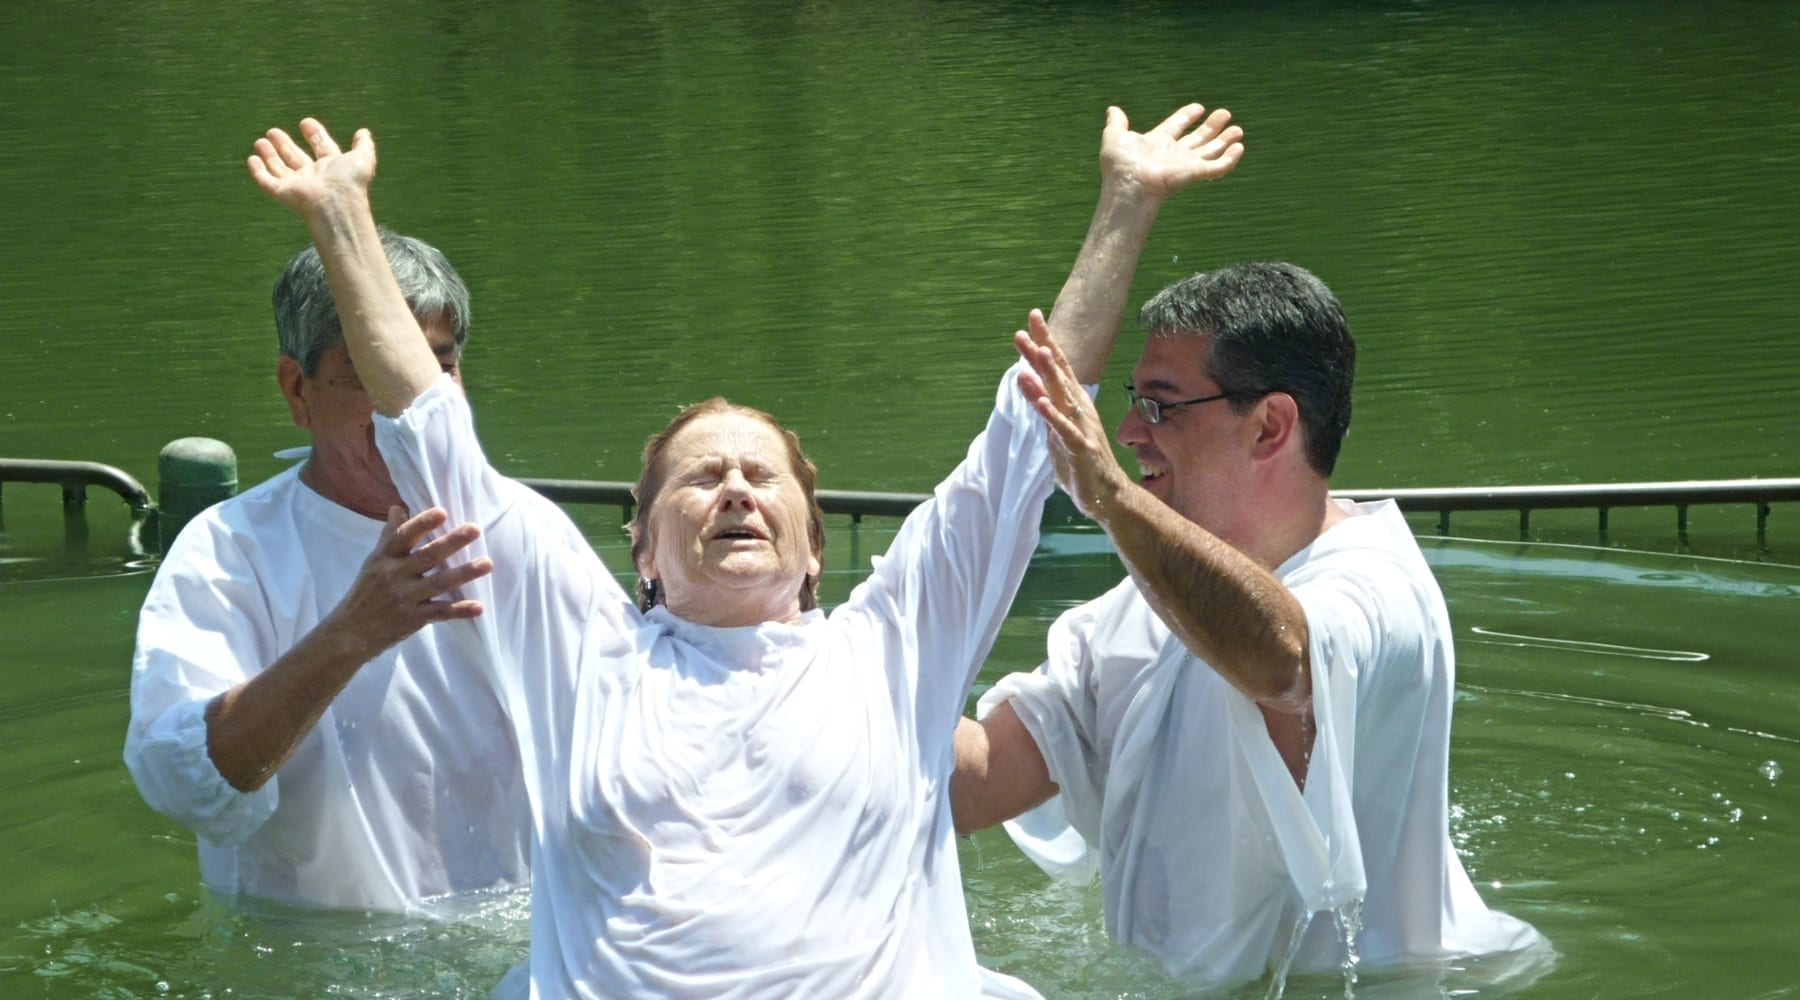 How Old Should You Be Before You're Baptized?